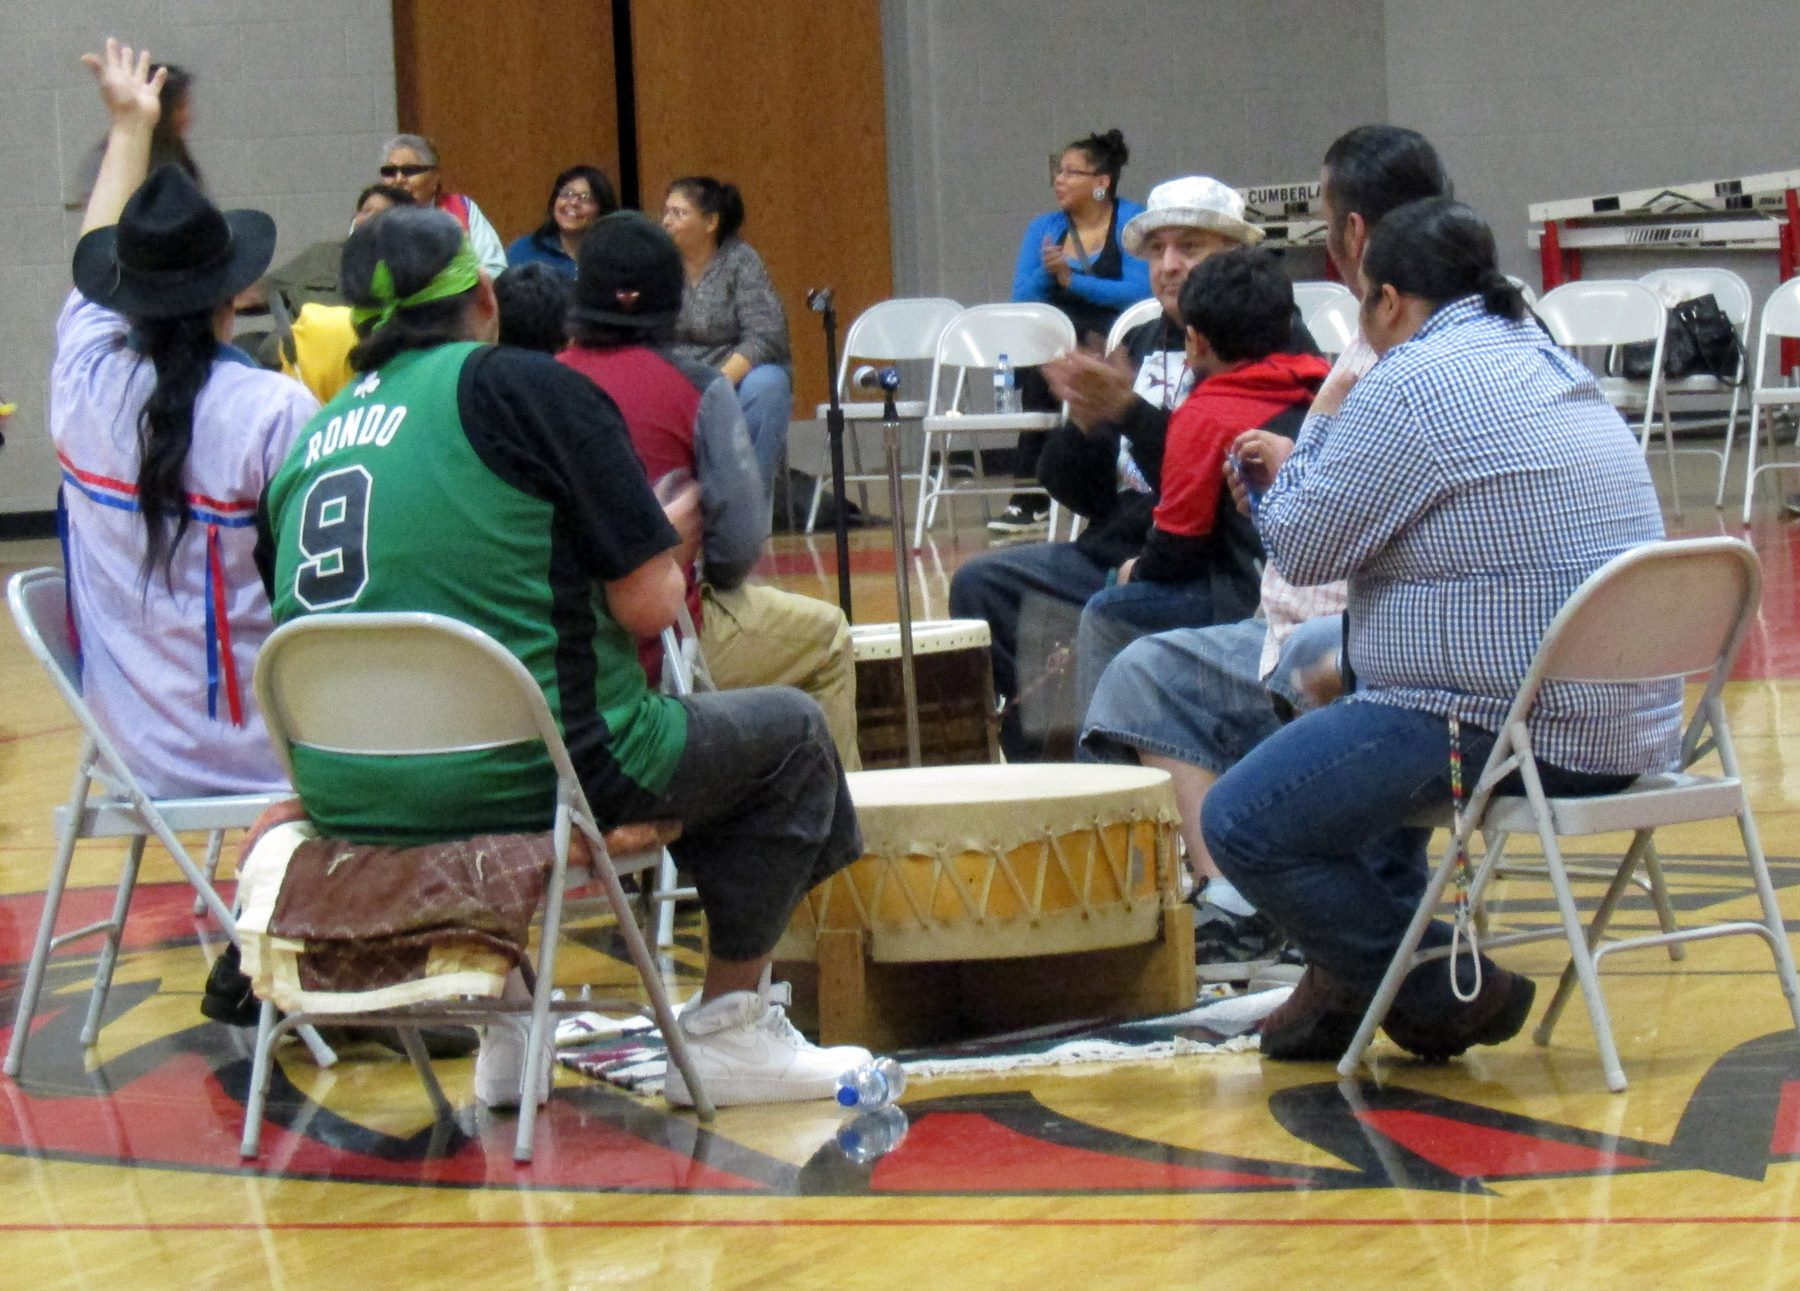 St. Croix Chippewa Tribe ordered to reinstate five ousted members